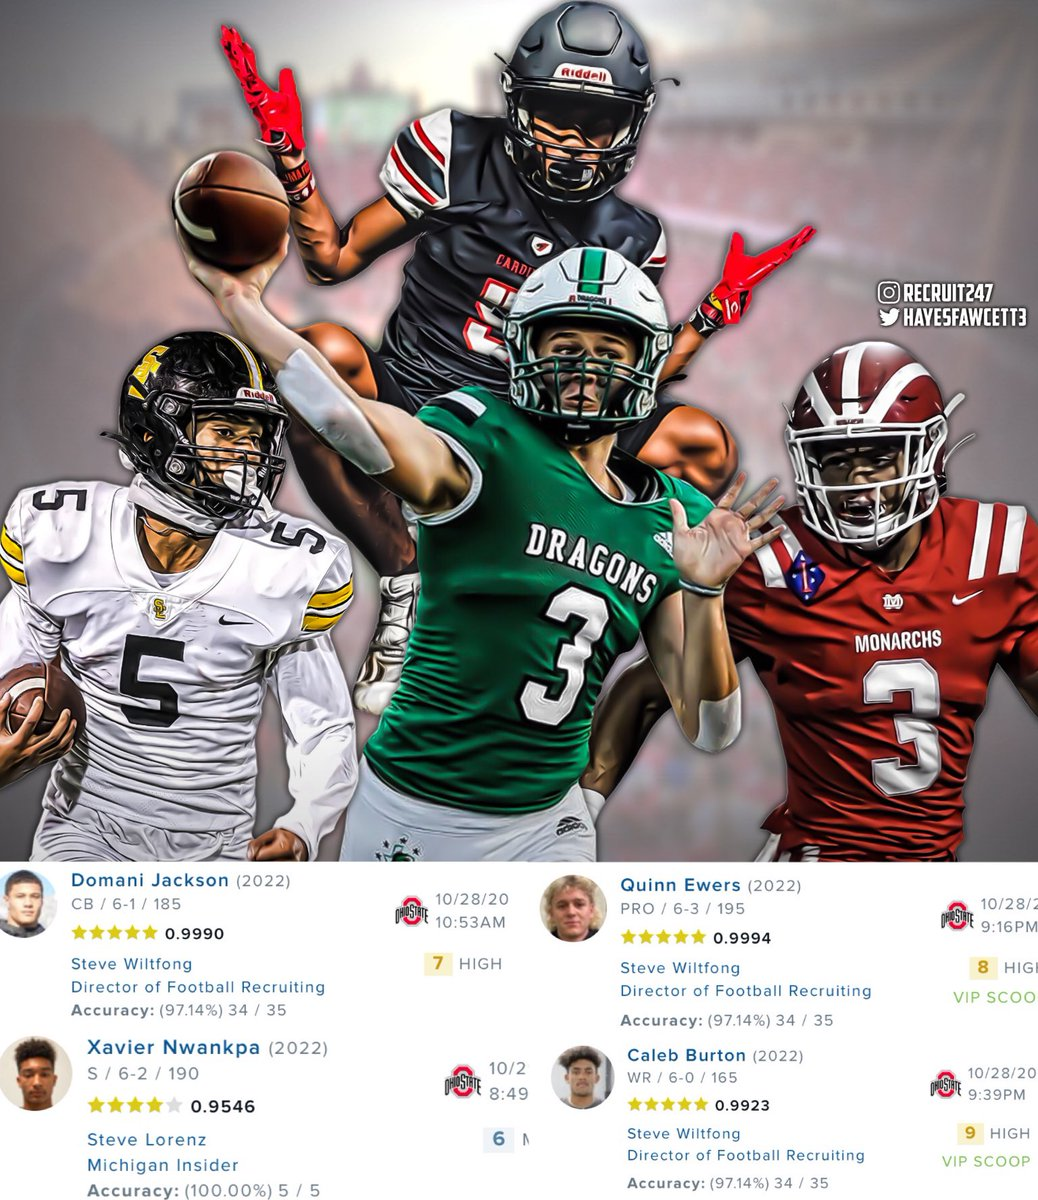 It's been a crazy 24 hours for news pertaining to the Class of 2022, specifically Ohio State. When it's all said and done, will the Buckeyes land all four?🤔